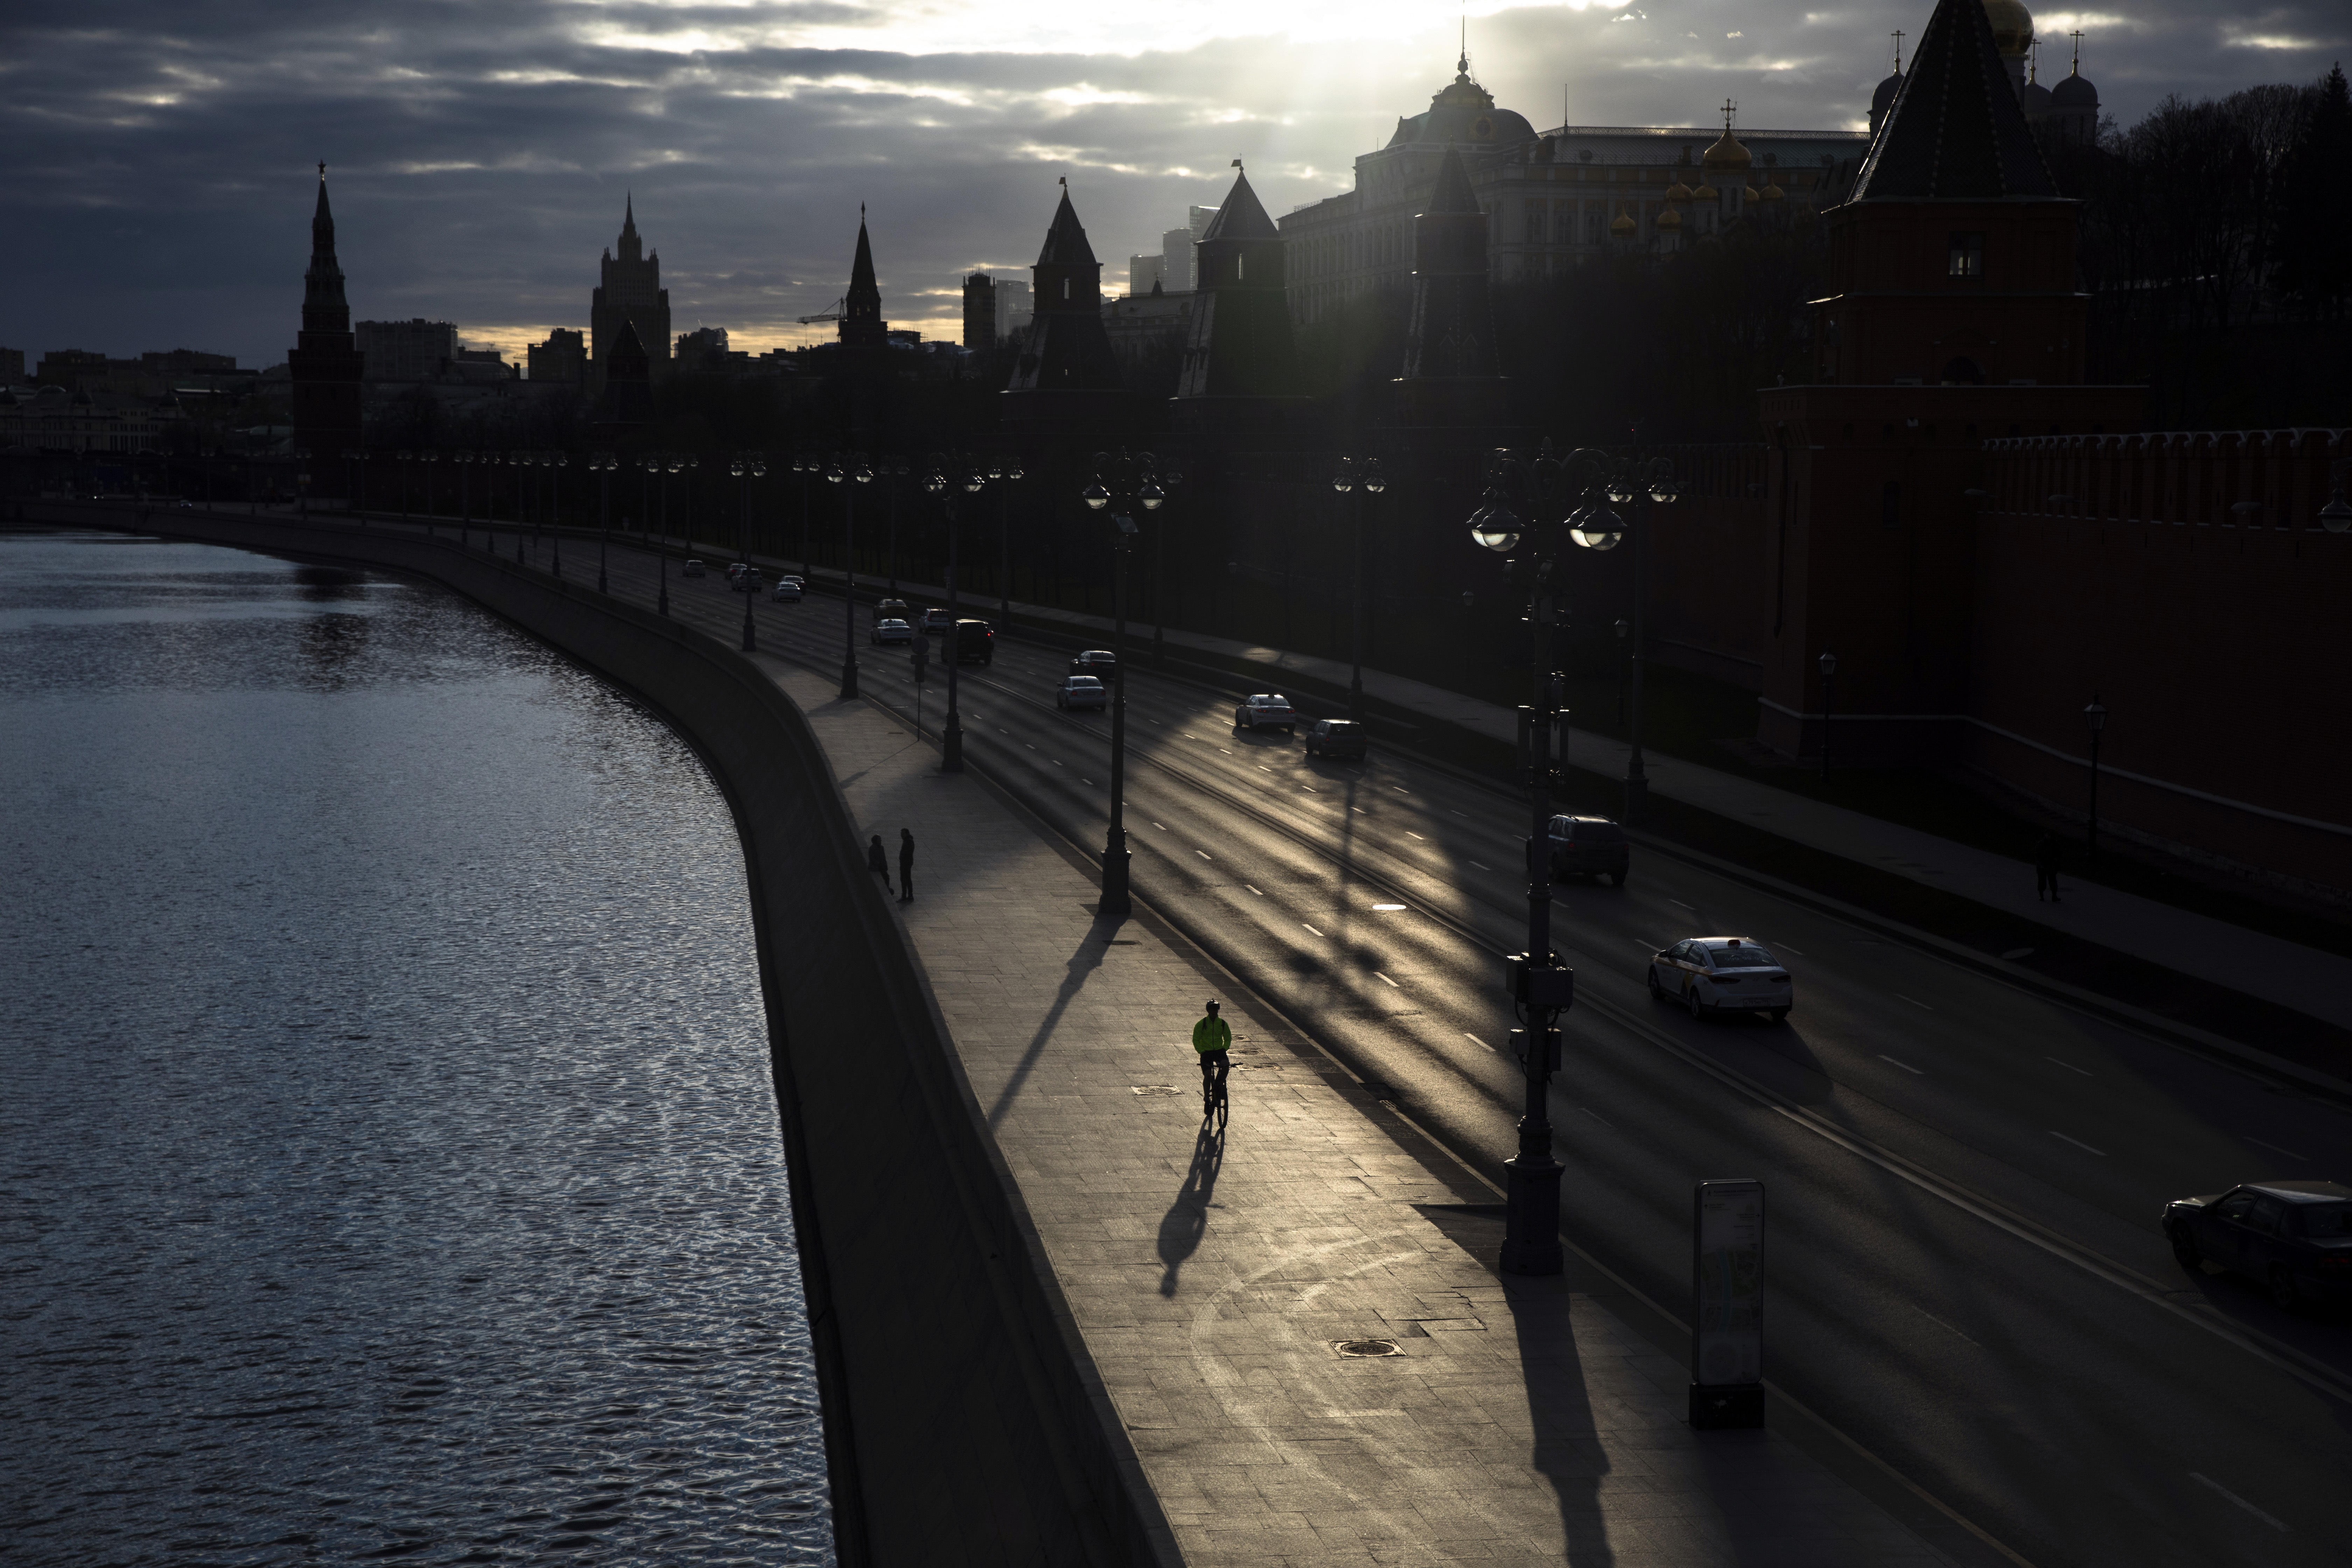 'Huge influx' of COVID-19 patients putting strain on Moscow hospitals, Kremlin says